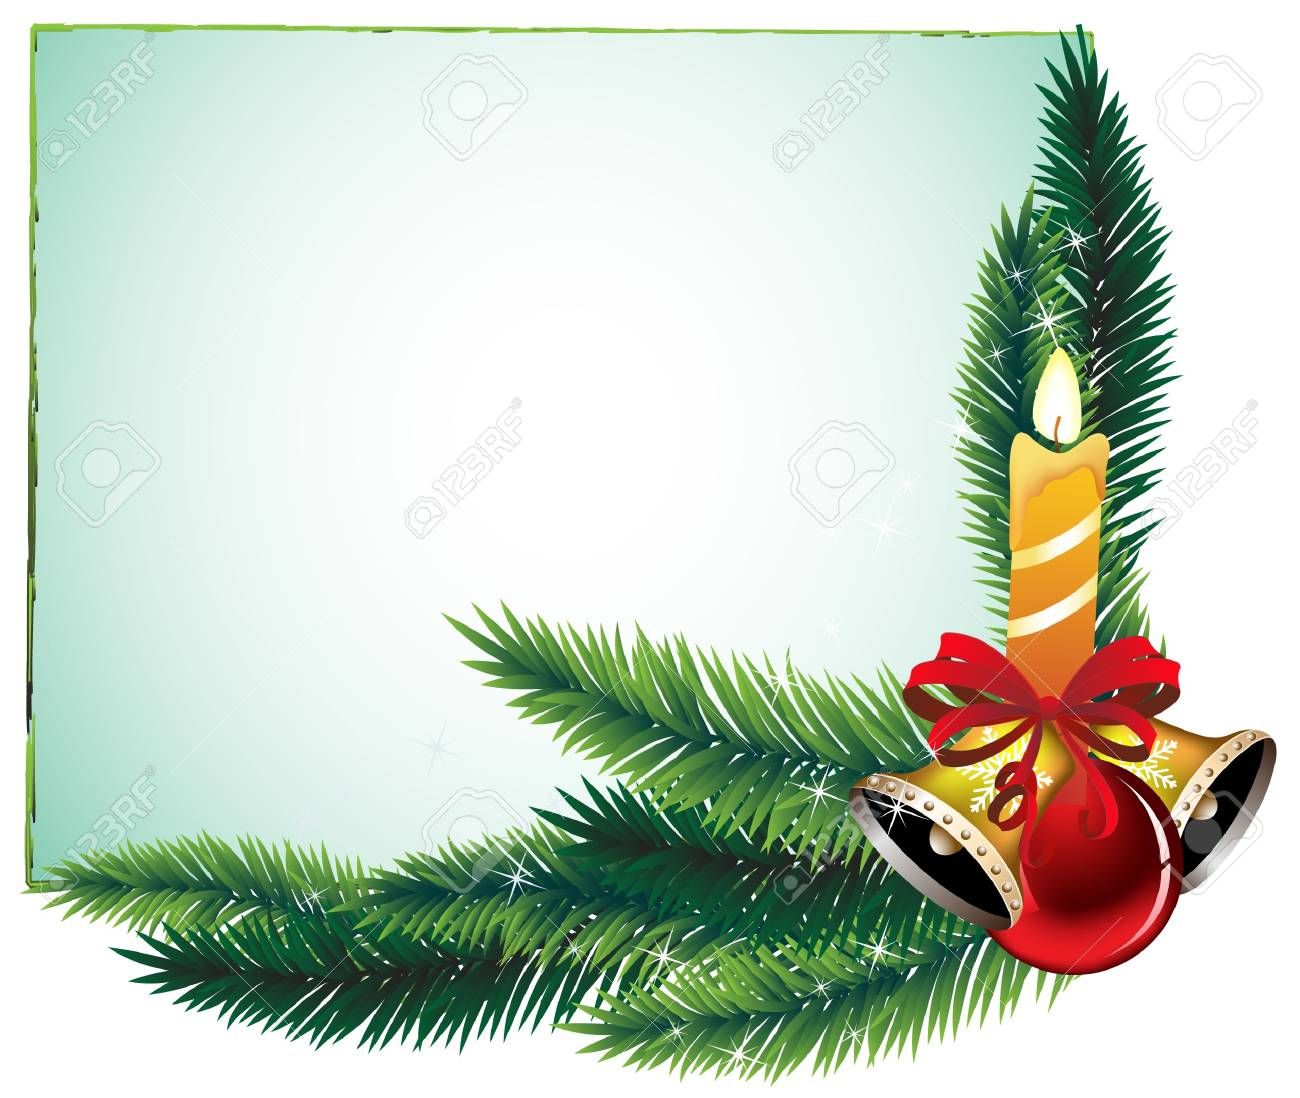 Garland of spruce branches and decorations Stock Vector - 11528036